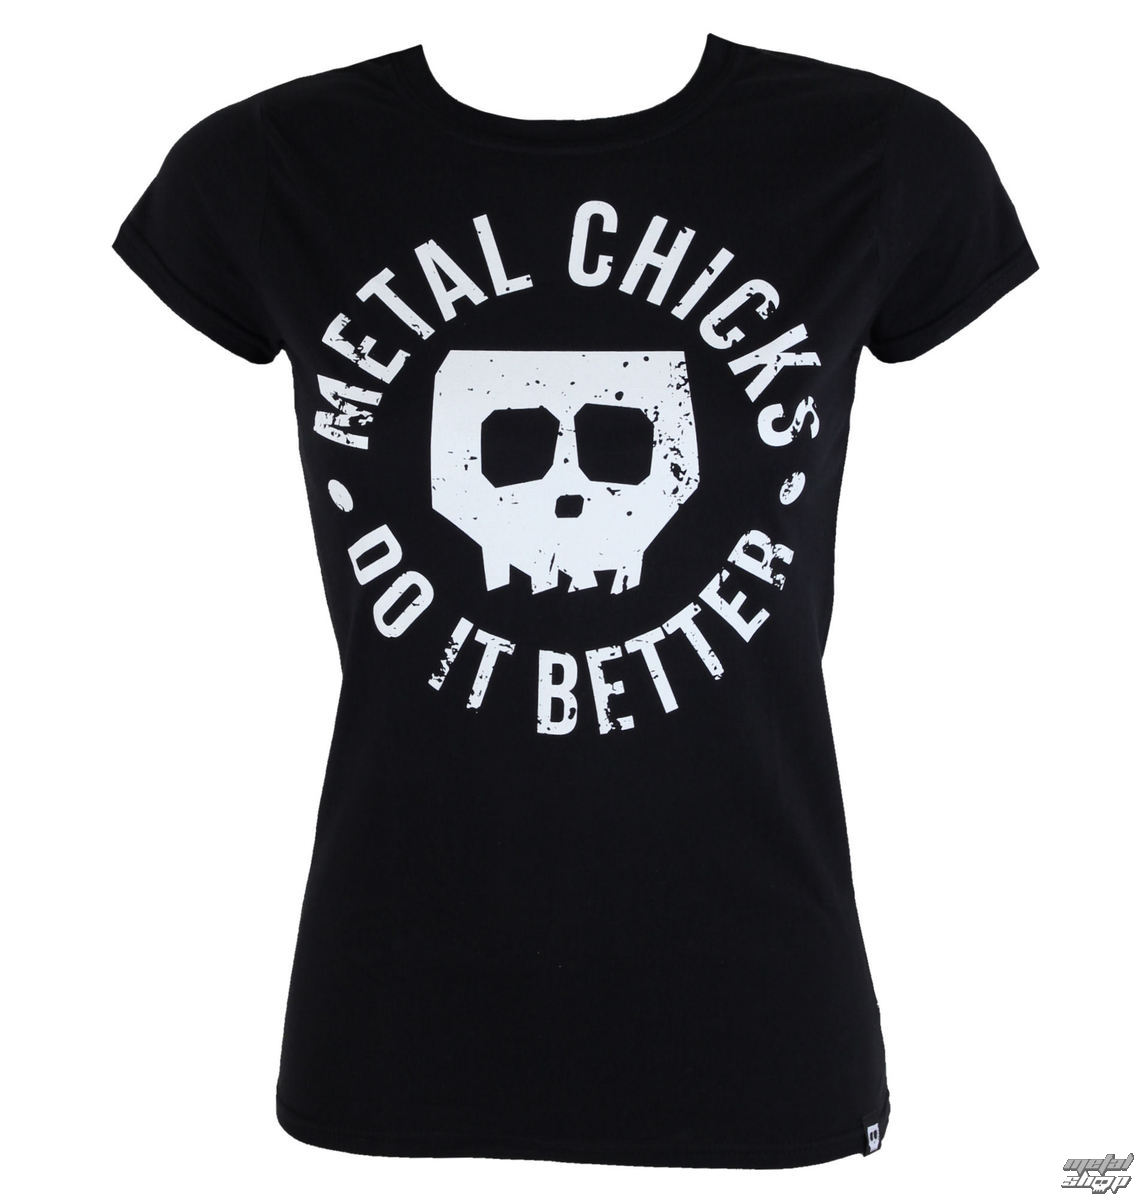 tričko dámské Metal chicks do it better - Skull - MCDIB012